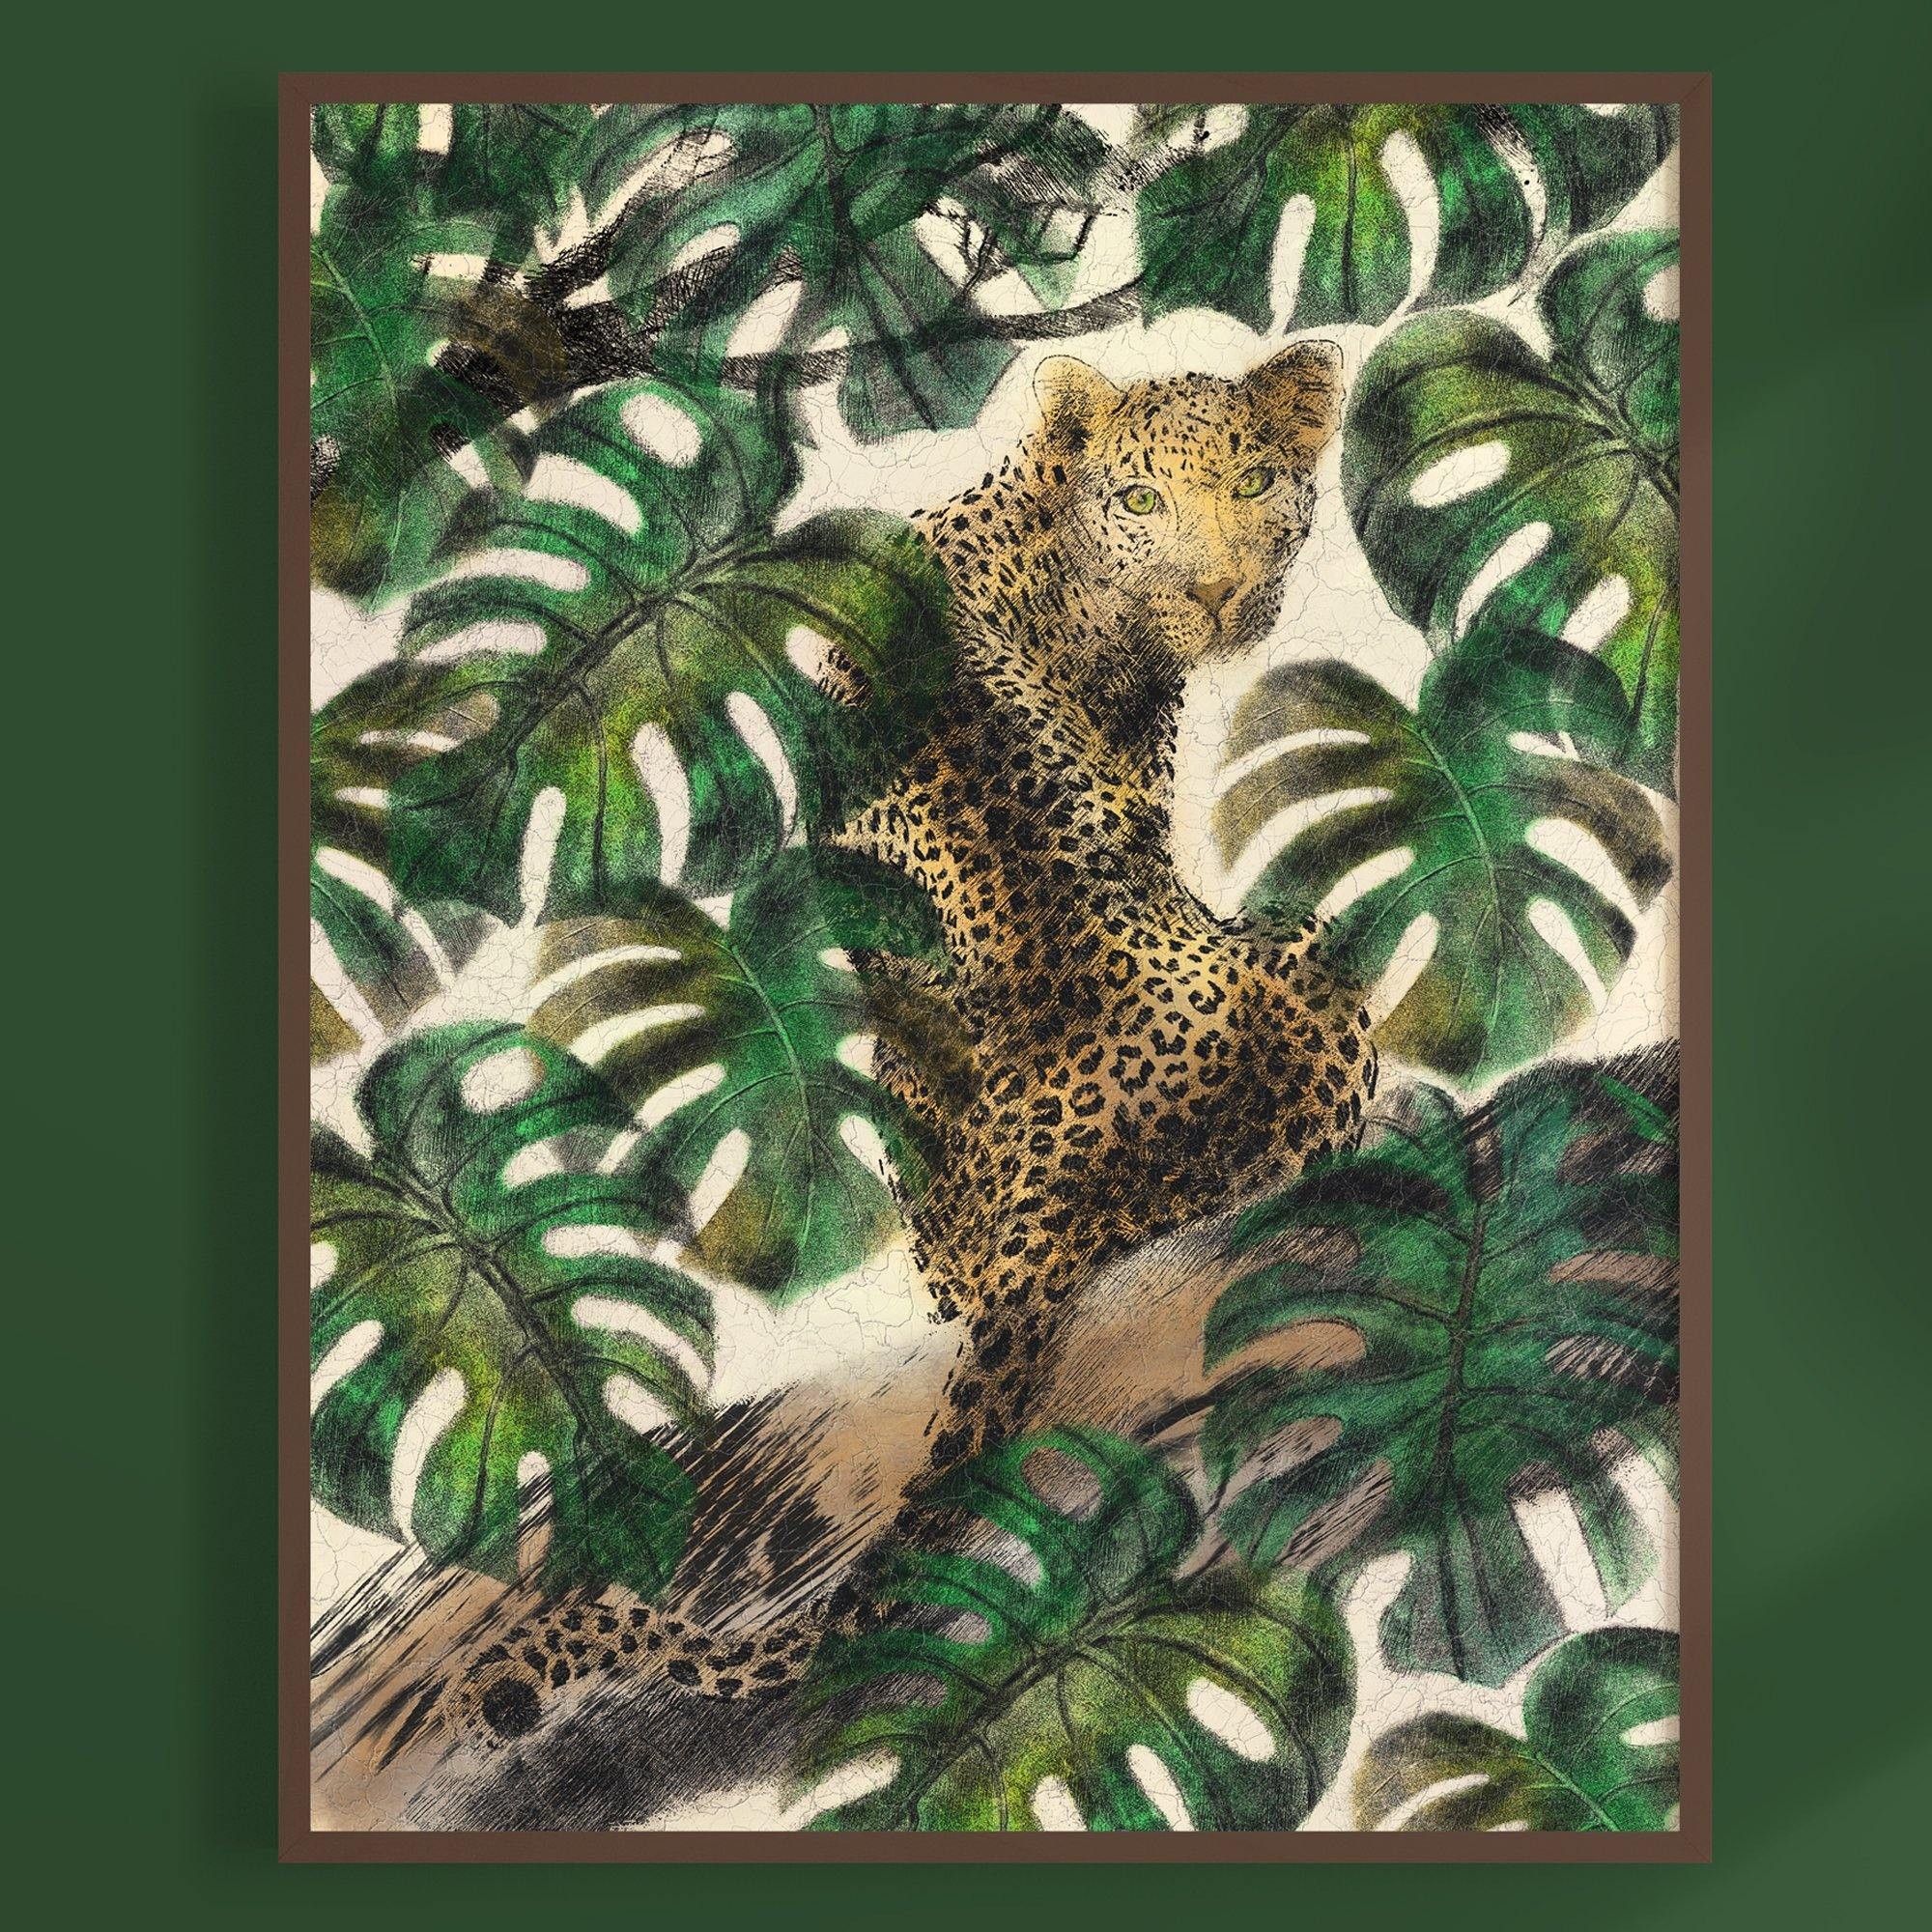 Jaguar Camouflage Artprint - The Patternologist